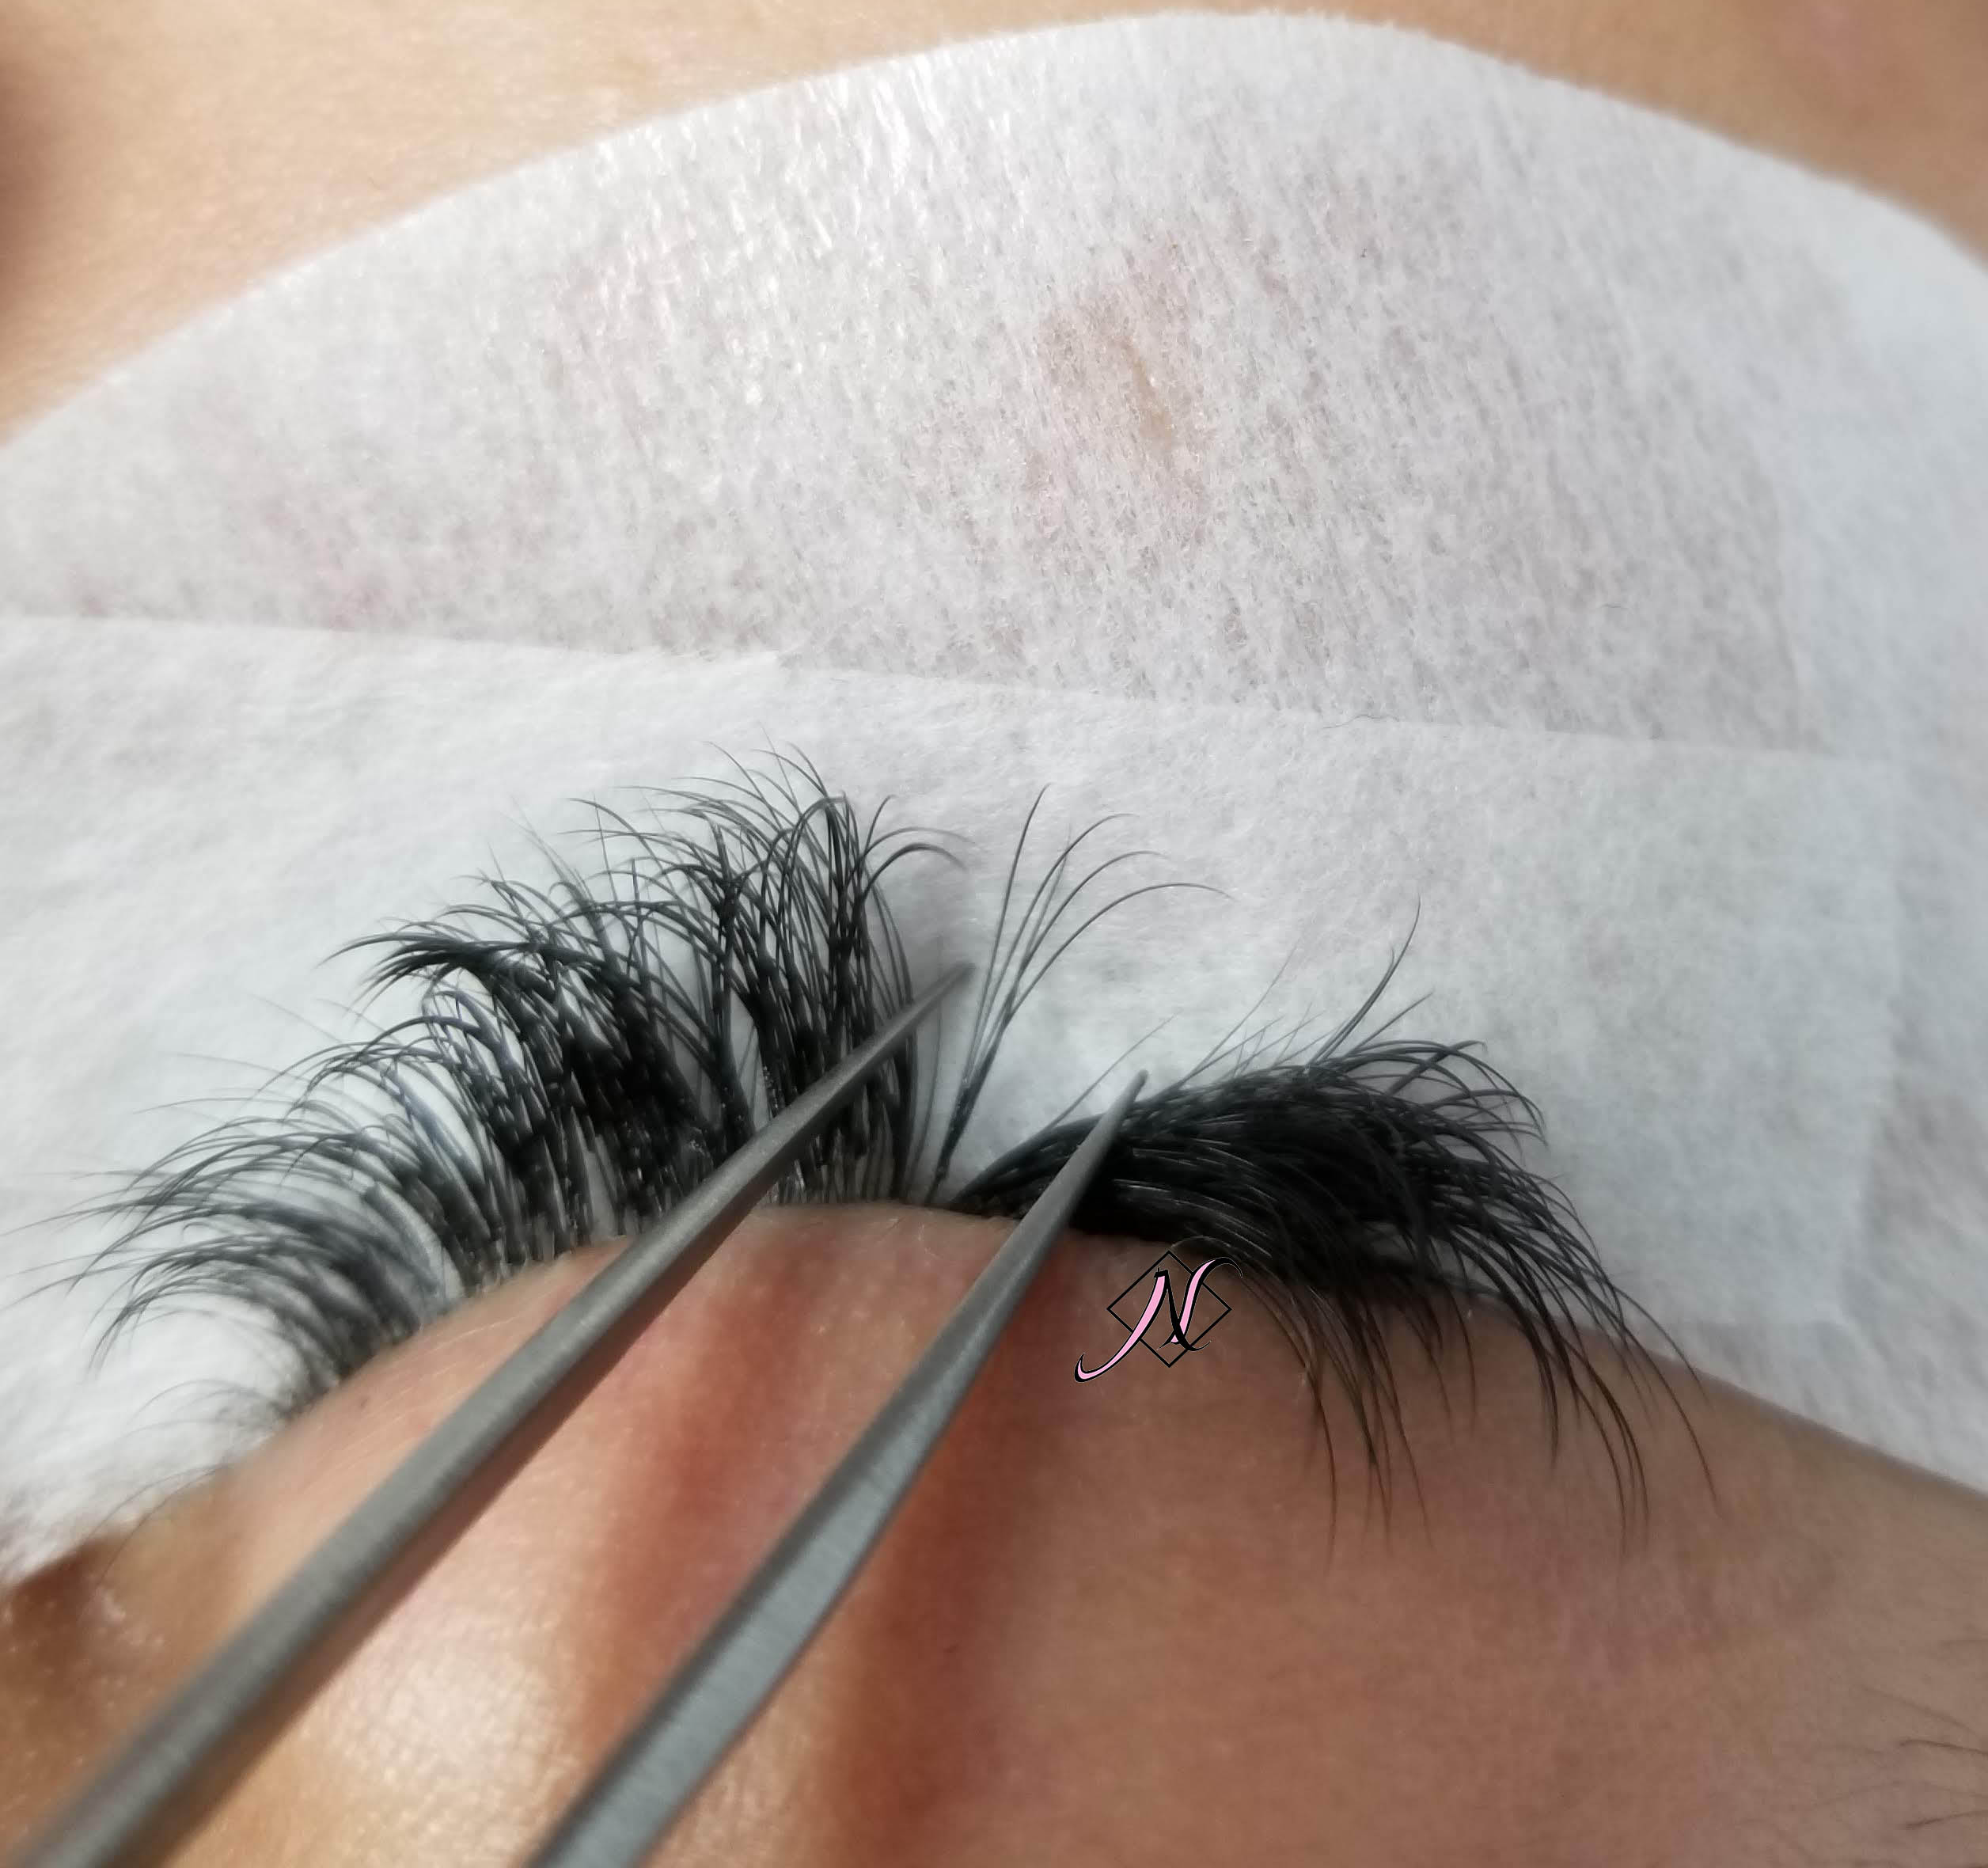 9a5098d5f9c Eyelash Extensions FAQ - All you need to know